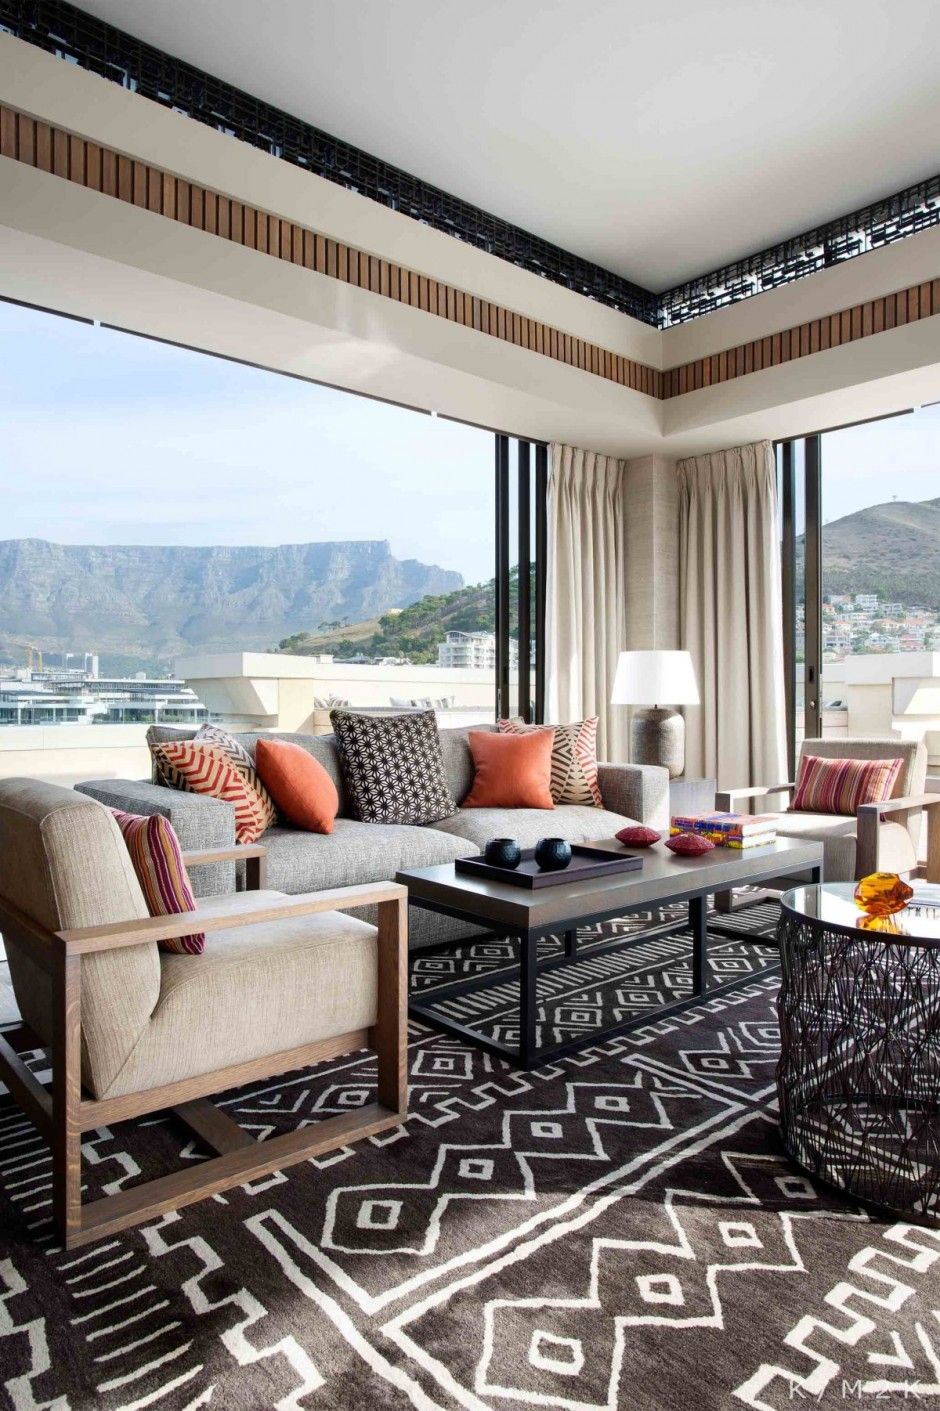 Cultured Interiors --- One Hotel, Penthouse Apartment 1 by K/M2K | South Africa